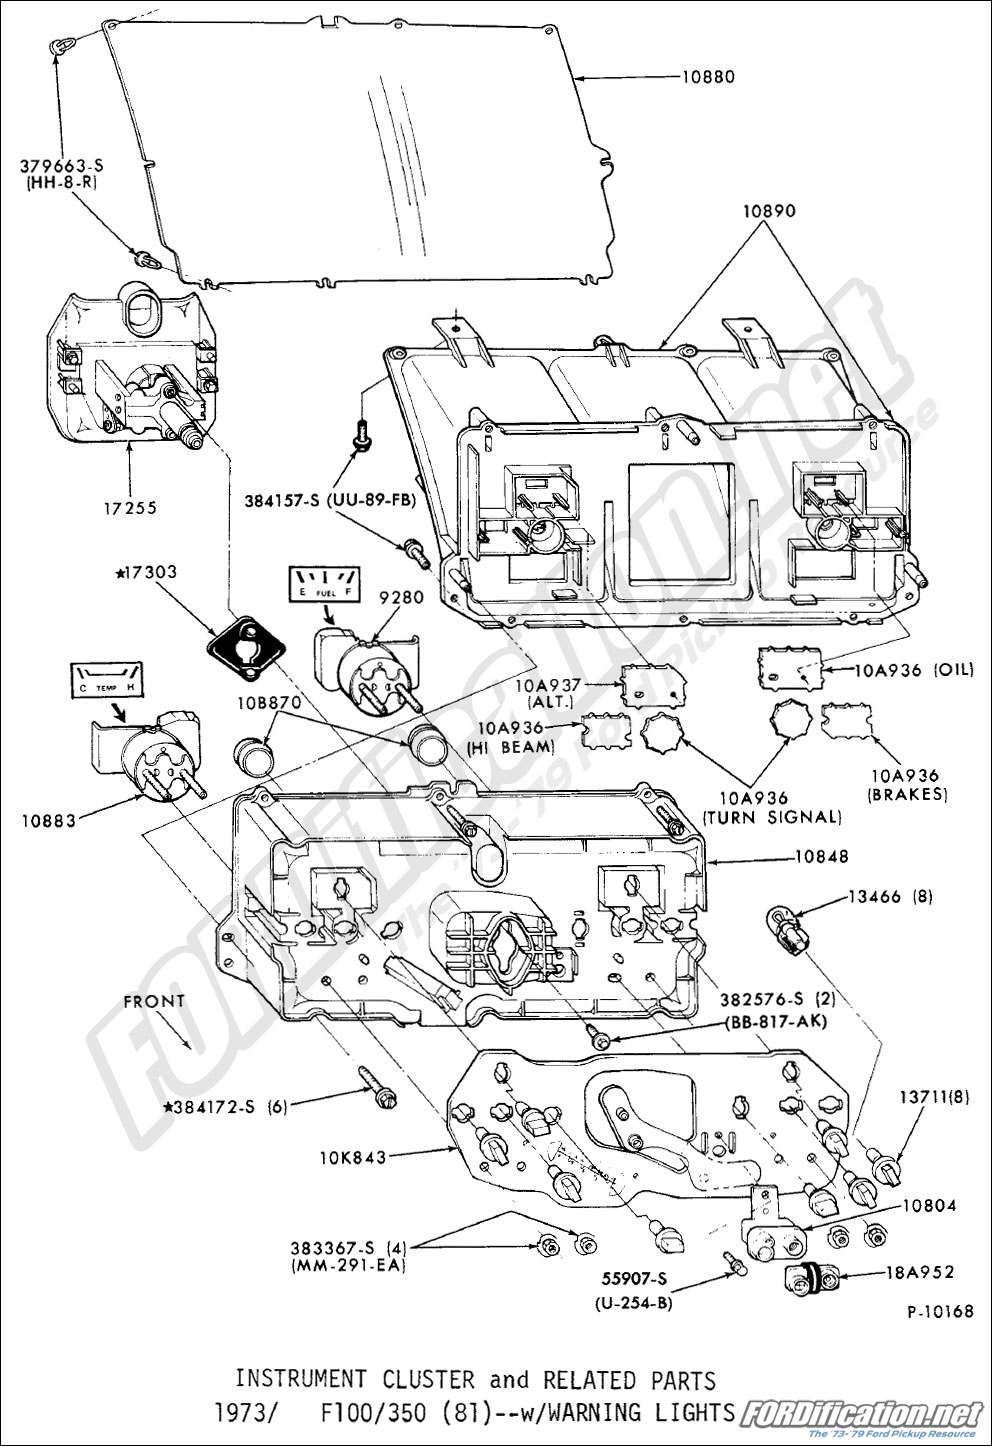 1979 Gmc Truck Wiring Diagram Cluster • Wiring Diagram For